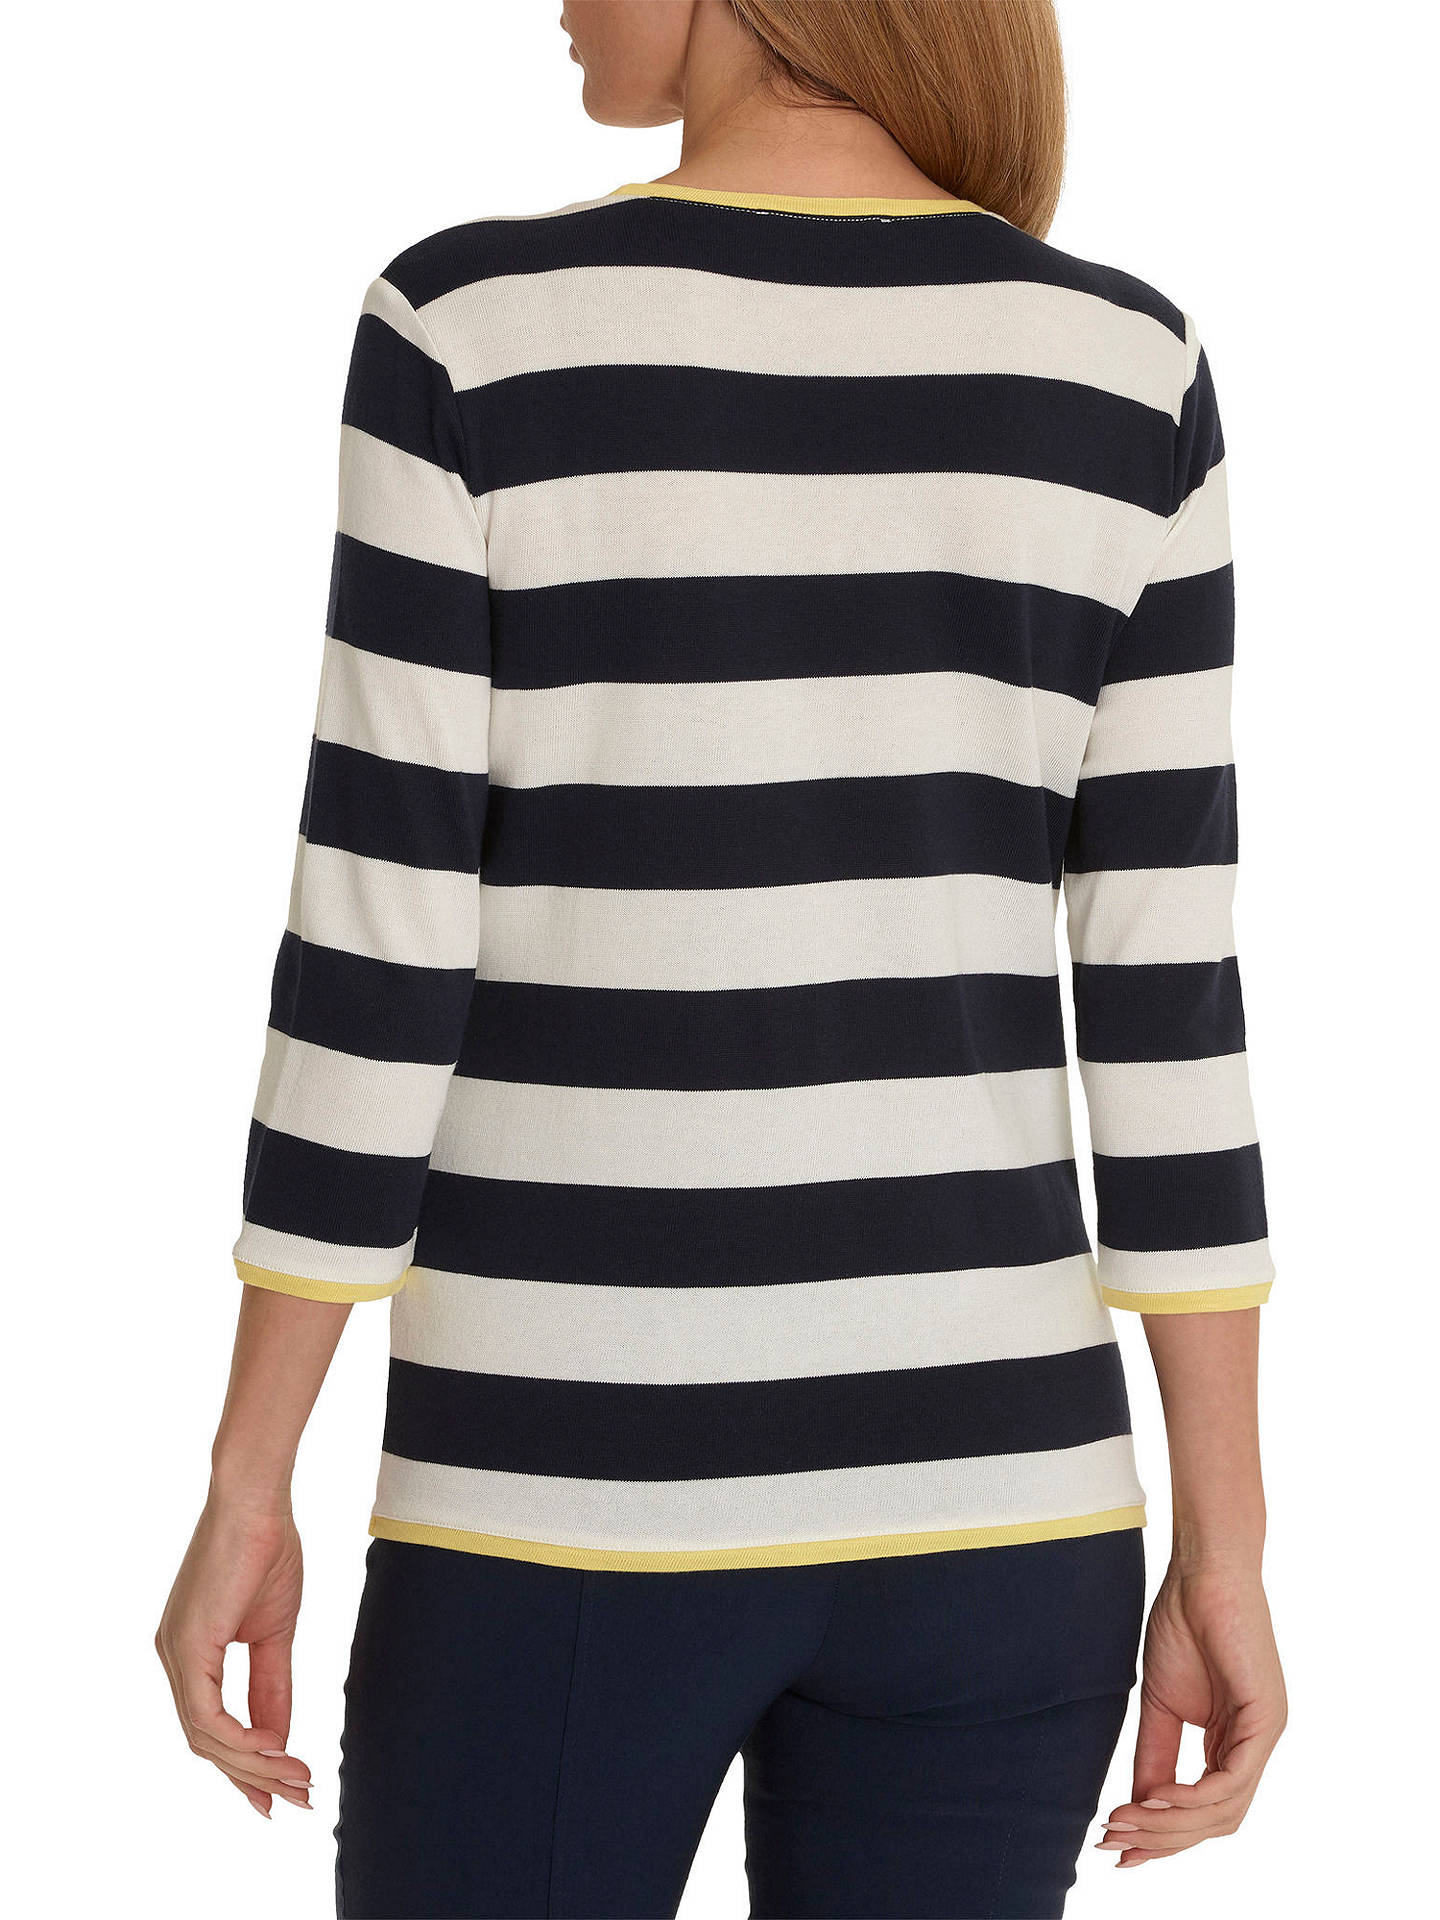 BuyBetty Barclay Striped Jumper, Cream/Dark Blue, 10 Online at johnlewis.com